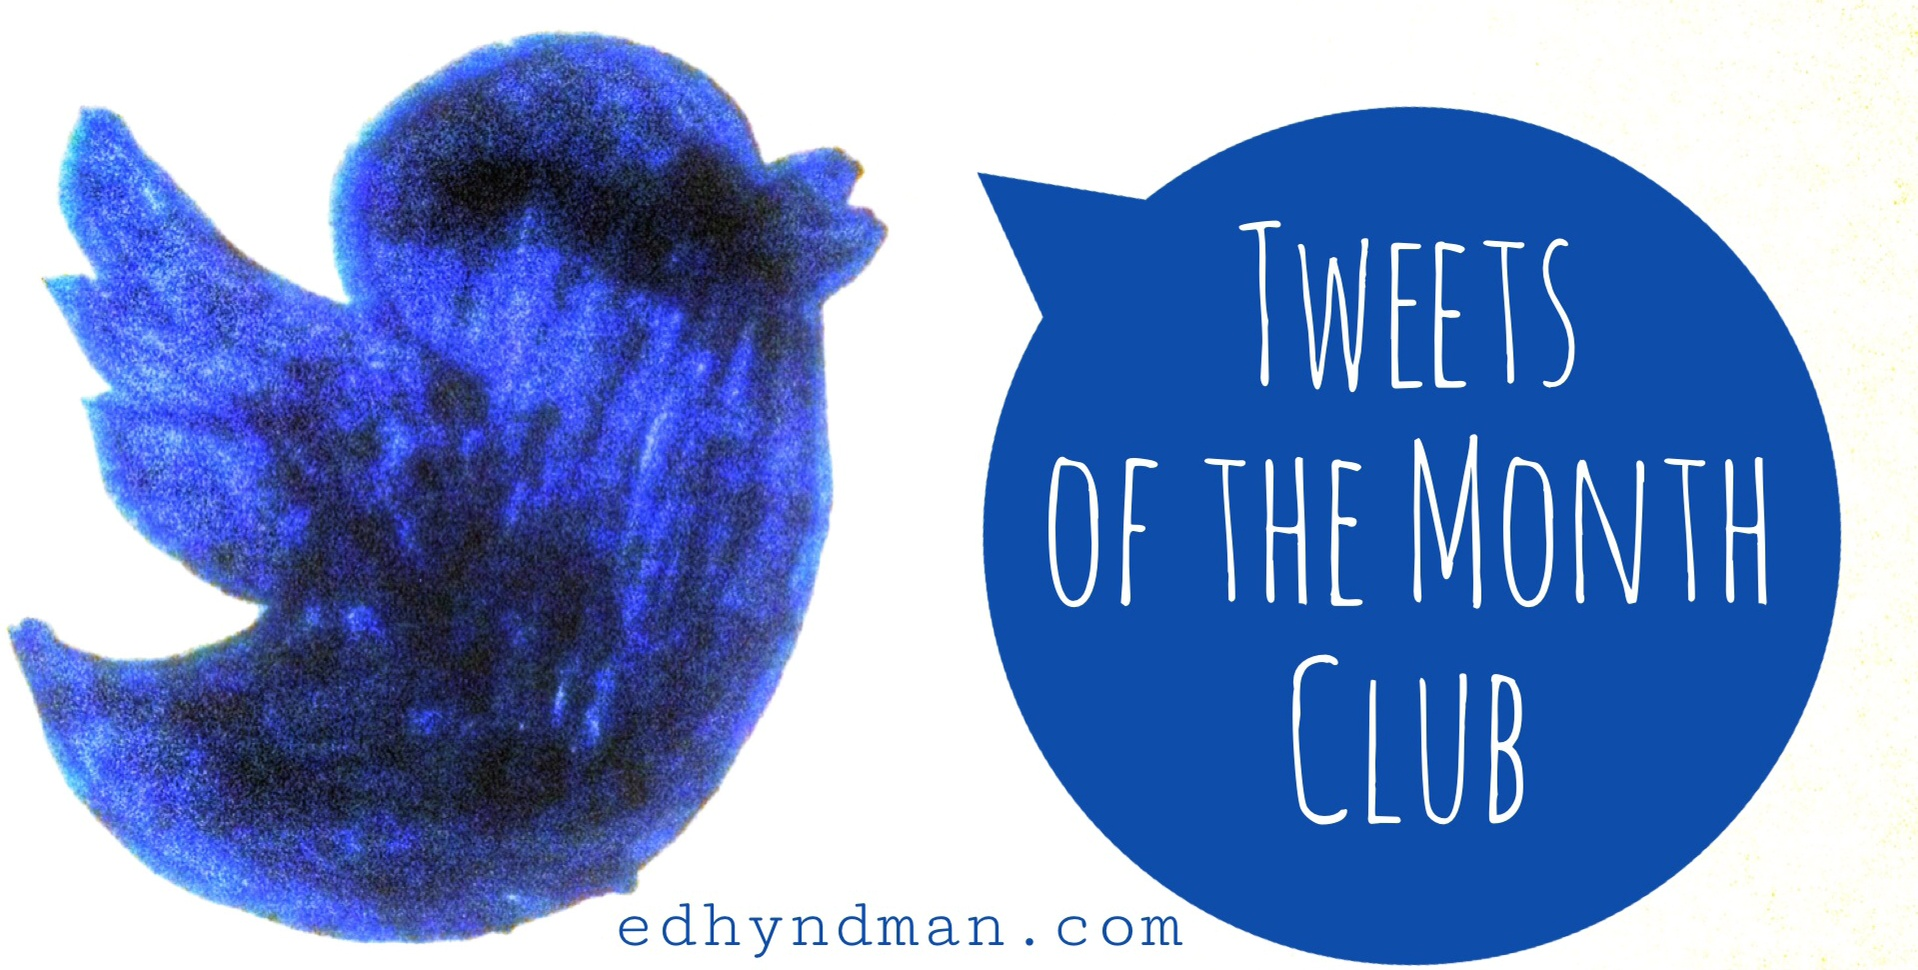 Tweets of the Month Club | November 2016